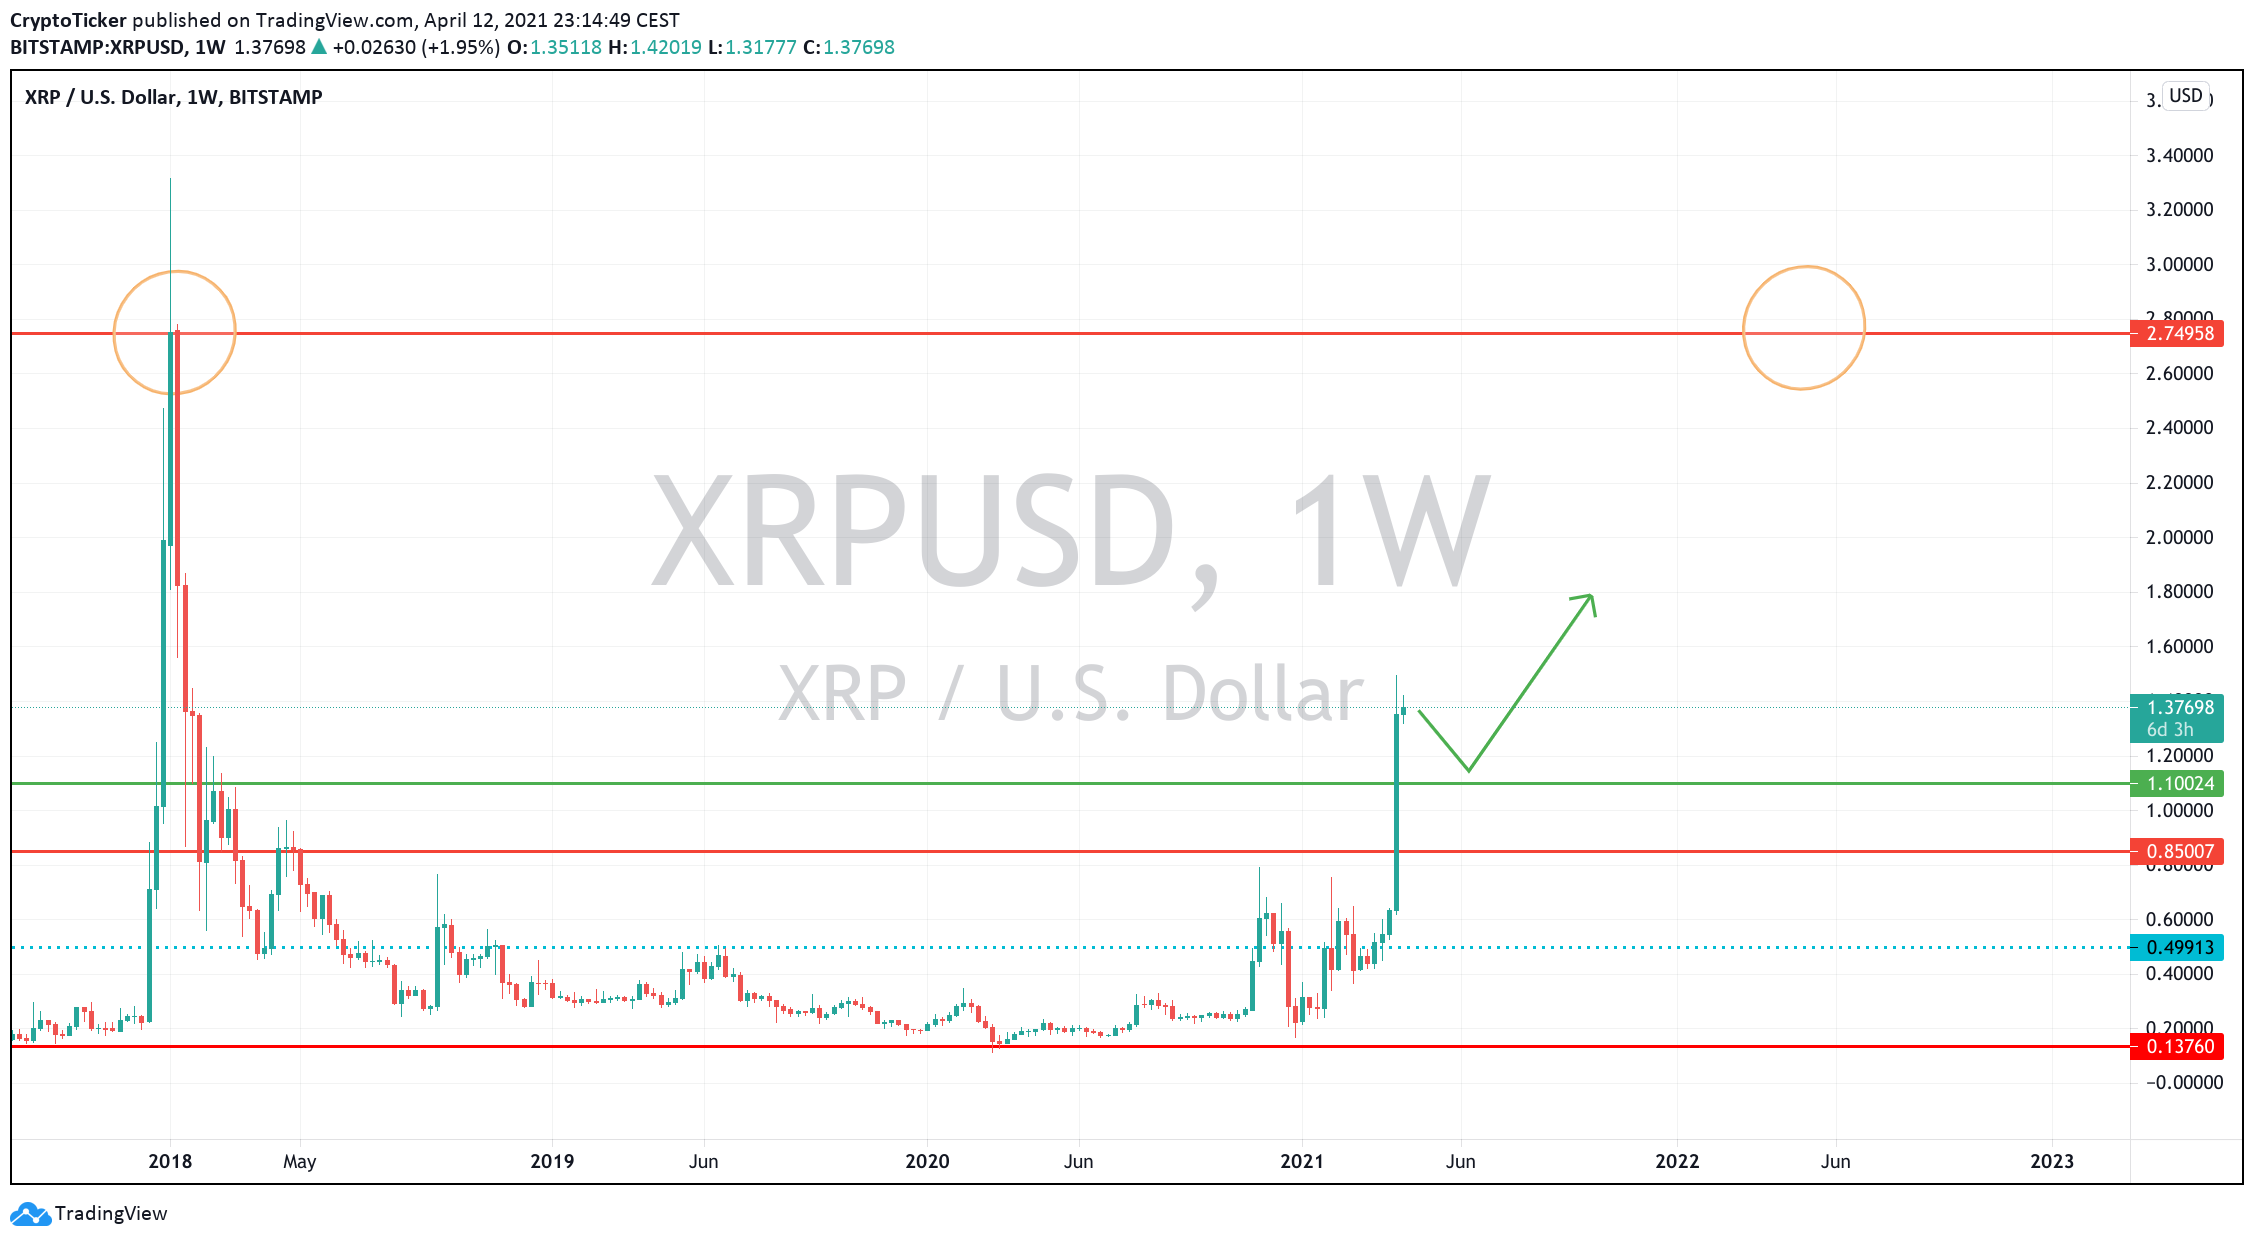 XRP/USD 1-week chart showing XRP's path towards its previous ATH